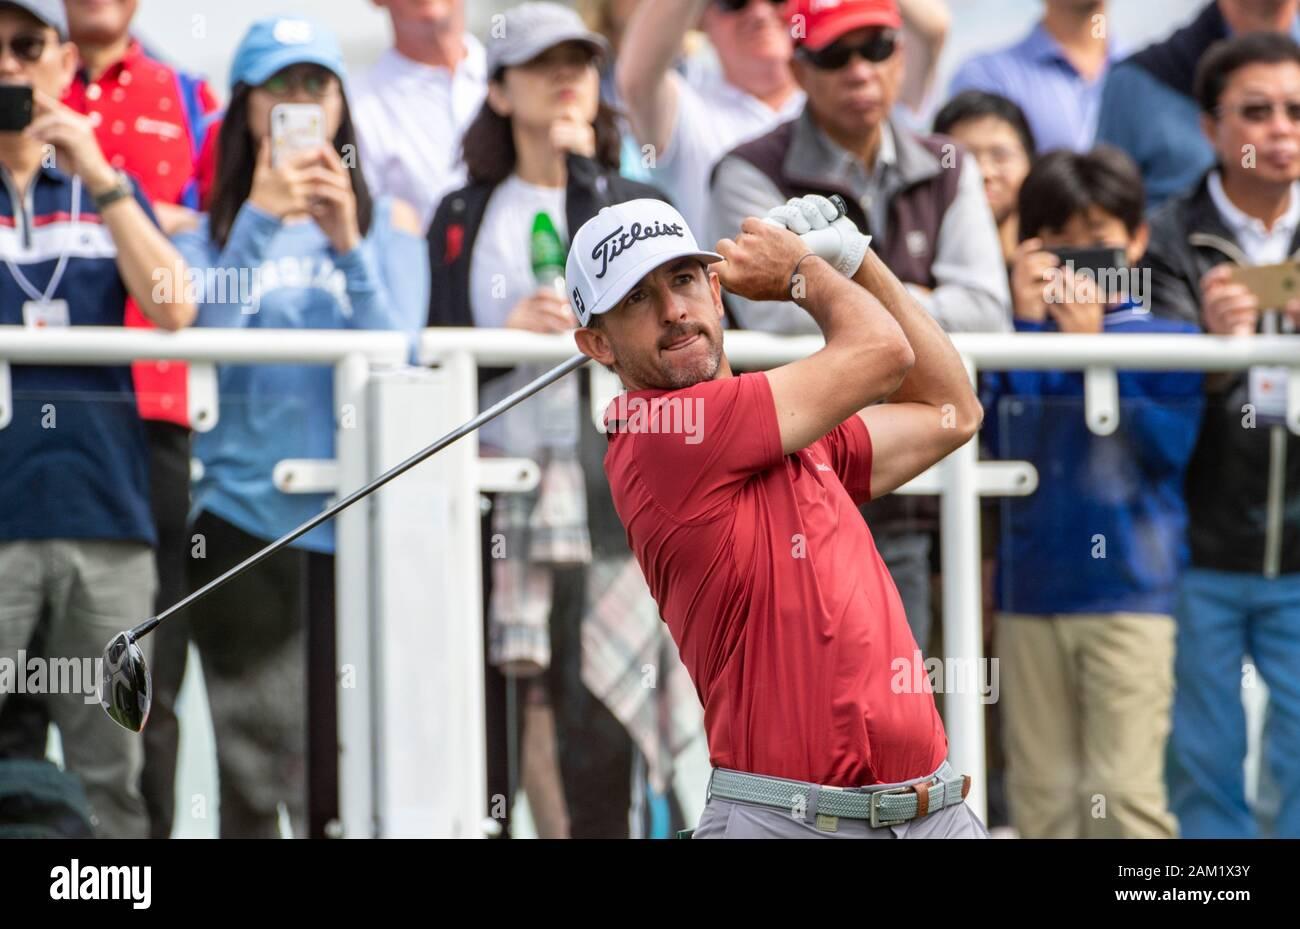 Hong Kong. 11th Jan, 2020. FANLING, HONG KONG SAR: JANUARY 10th 2020. Hong Kong Open Golf Round 3. Wade Ormsby of Australia holds the lead on day 3 of the tournament. Ormsby on the 1st tee.Alamy Live news/Jayne Russell Stock Photo